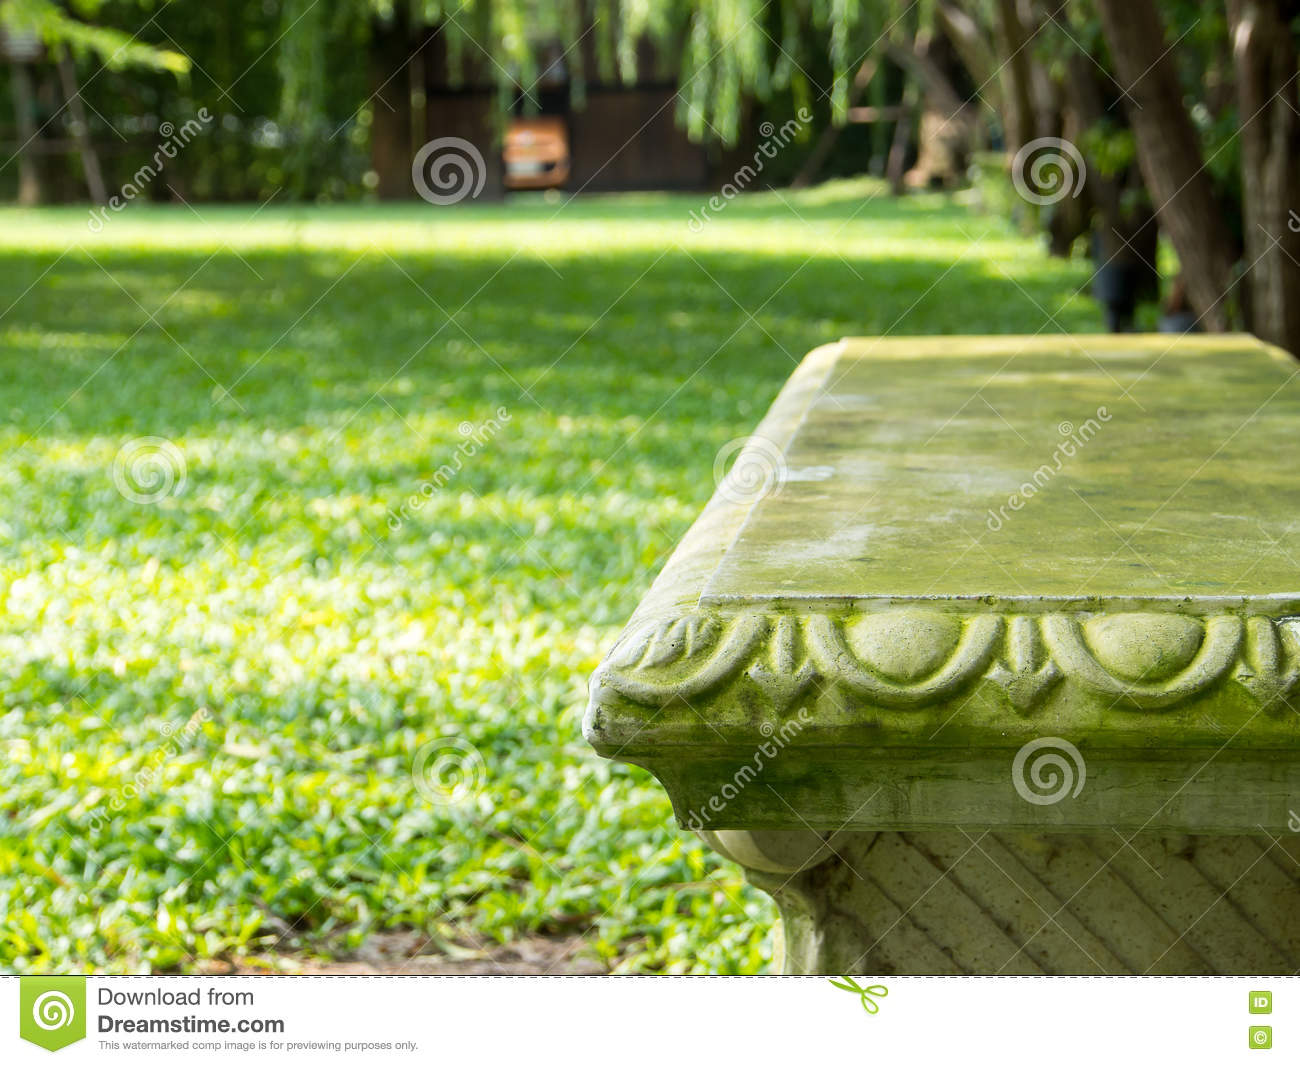 Stone Garden Bench On Park Background Stock Image - Image of ... for Park Background With Bench  570bof